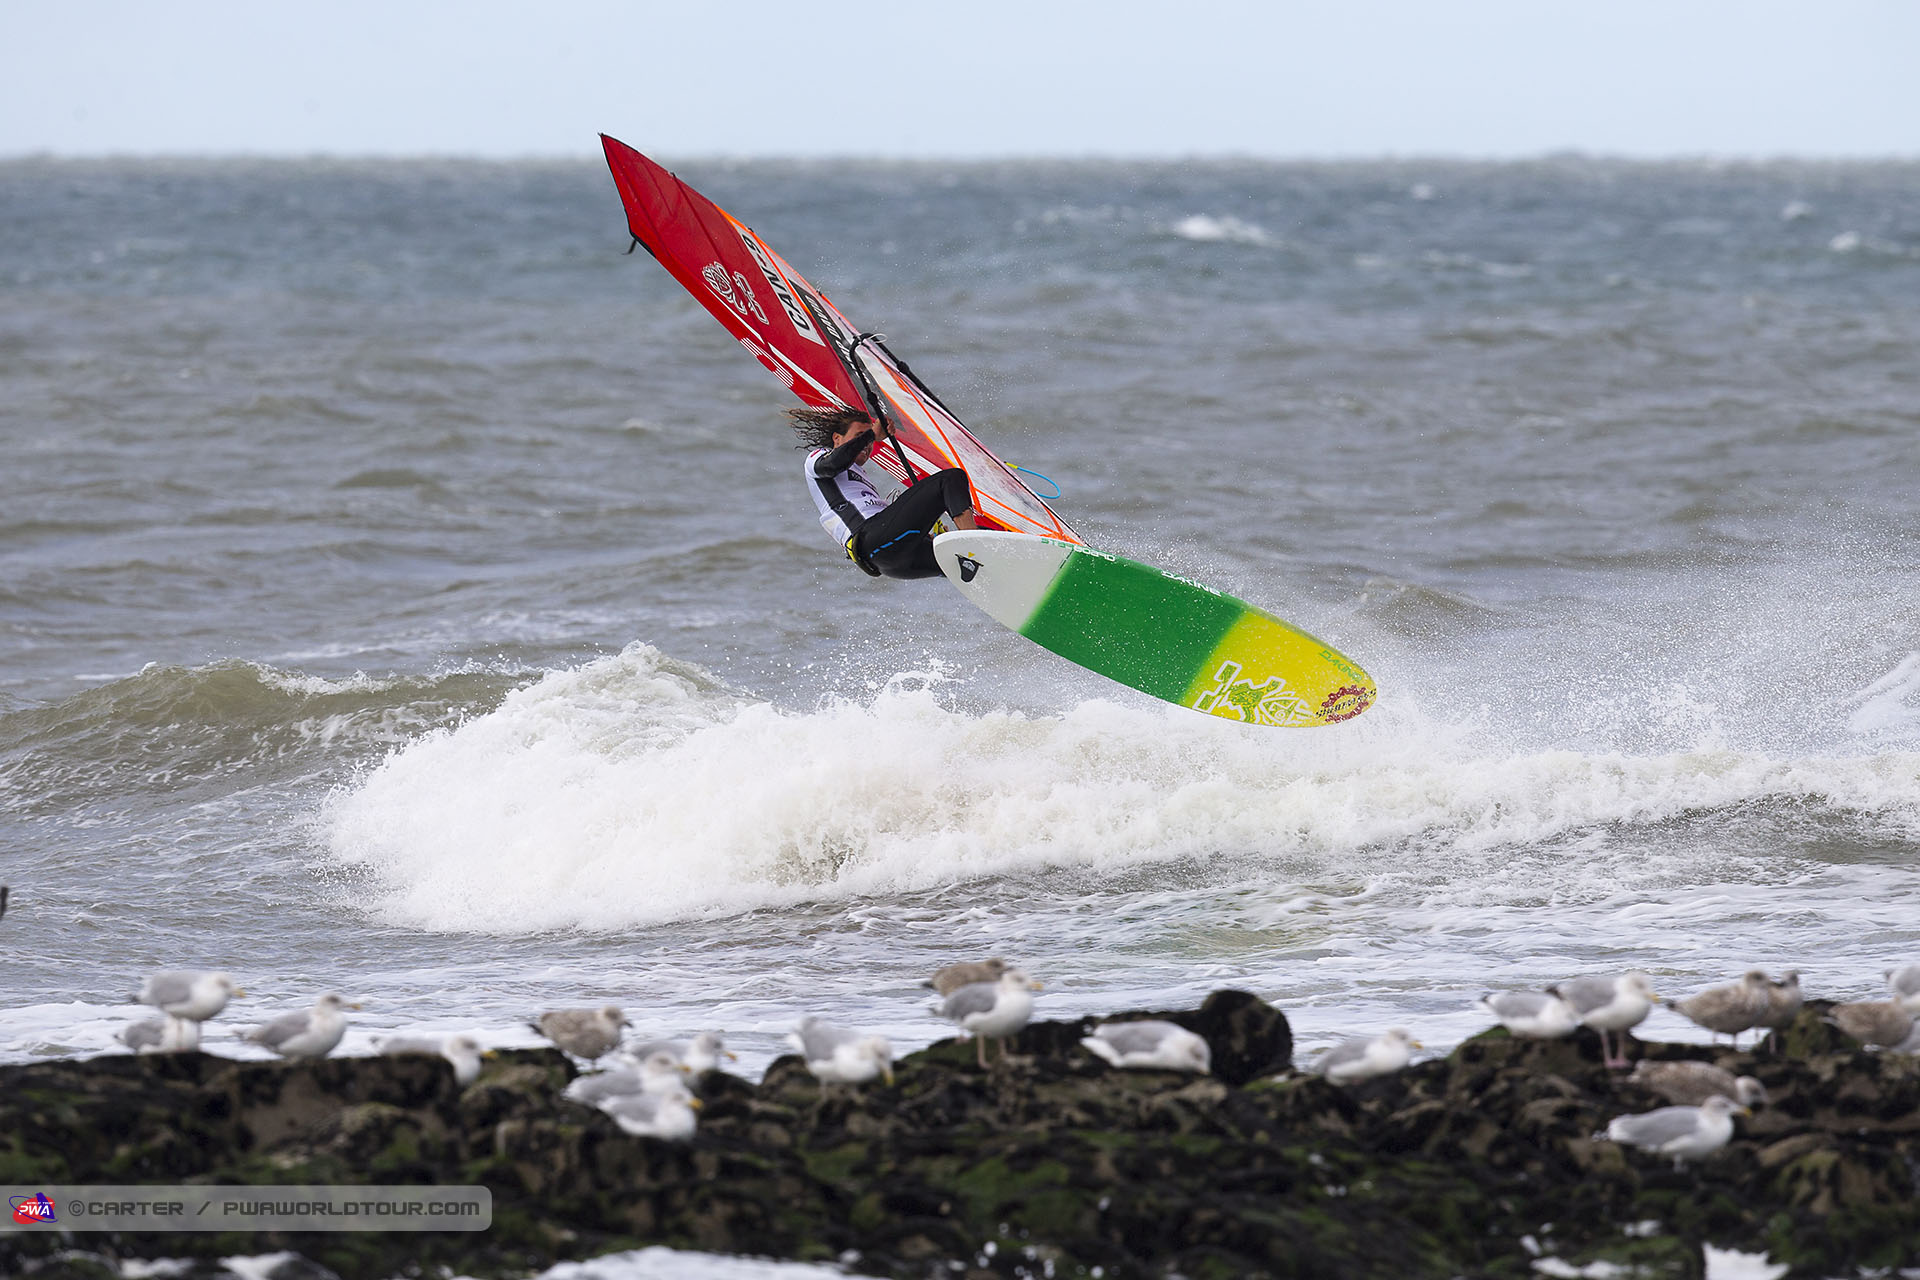 Phil Soltysiak spinning on the way in during PWA World Tour heat.